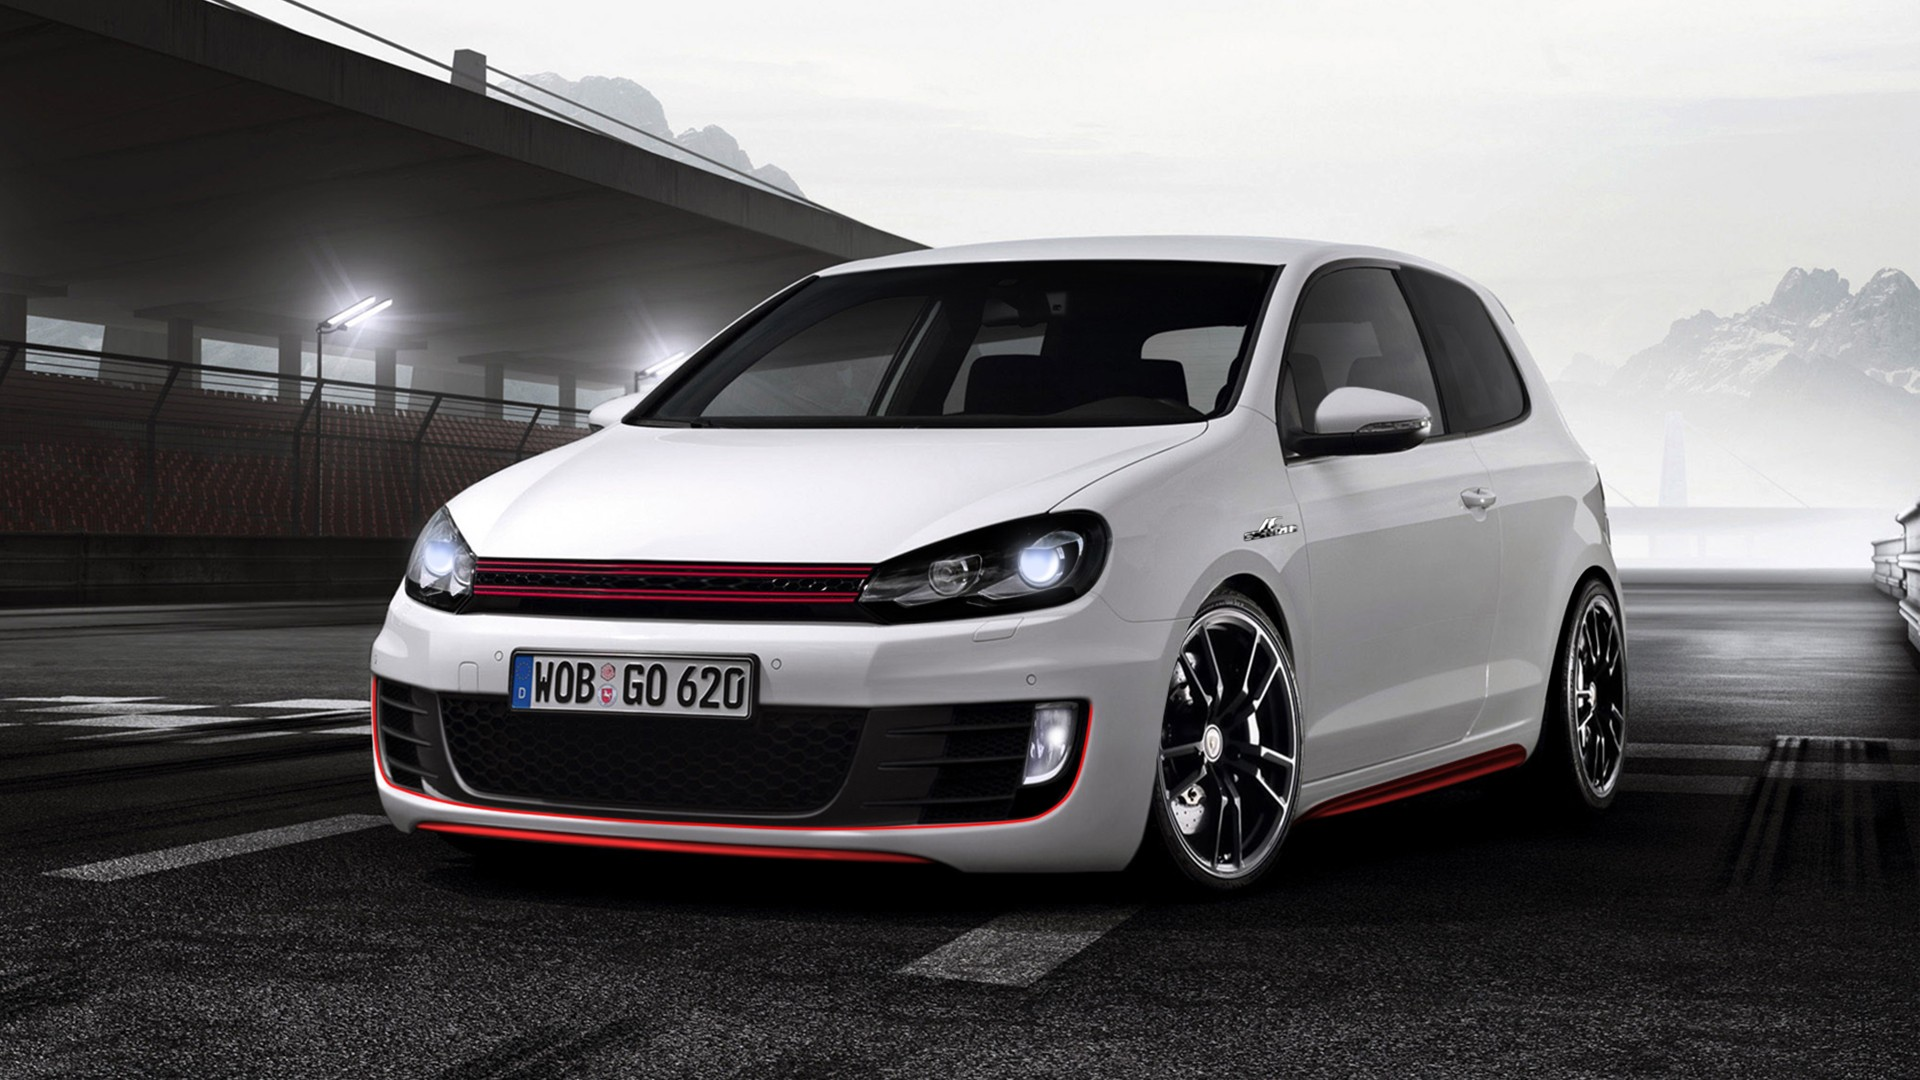 Golf-Gti-Wallpapers1